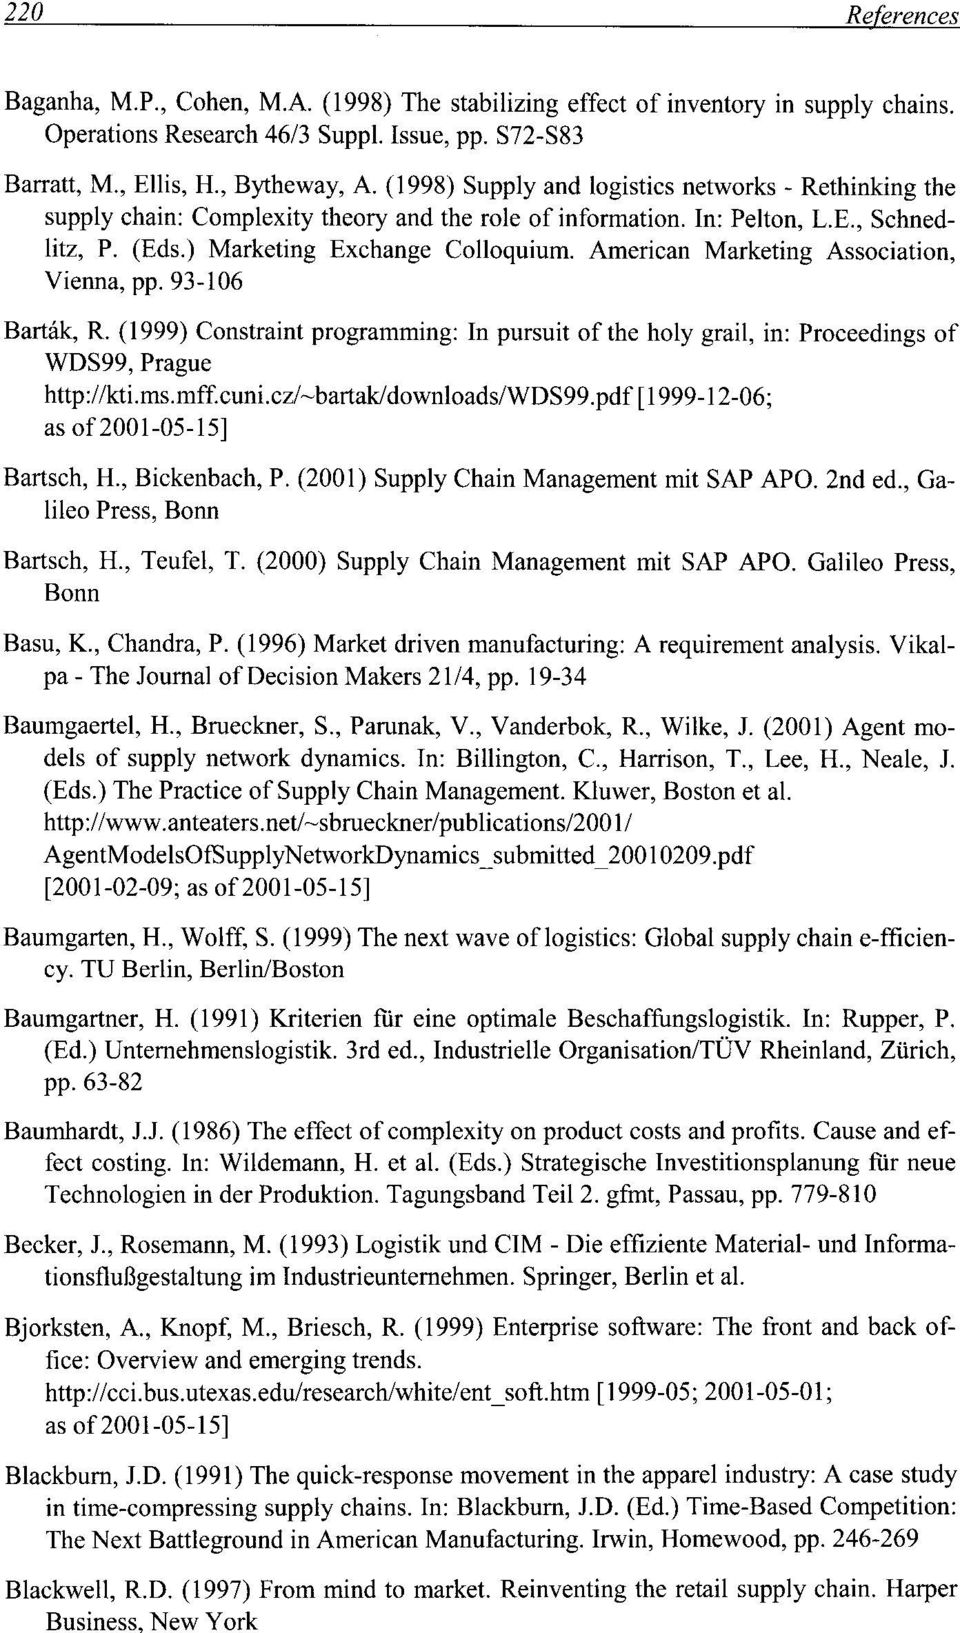 American Marketing Association, Vienna, pp. 93-106 Bartak, R. (1999) Constraint programming: In pursuit of the holy grail, in: Proceedings of WDS99, Prague http://kti.ms.mff.cuni.cz/~bartak!downloads!